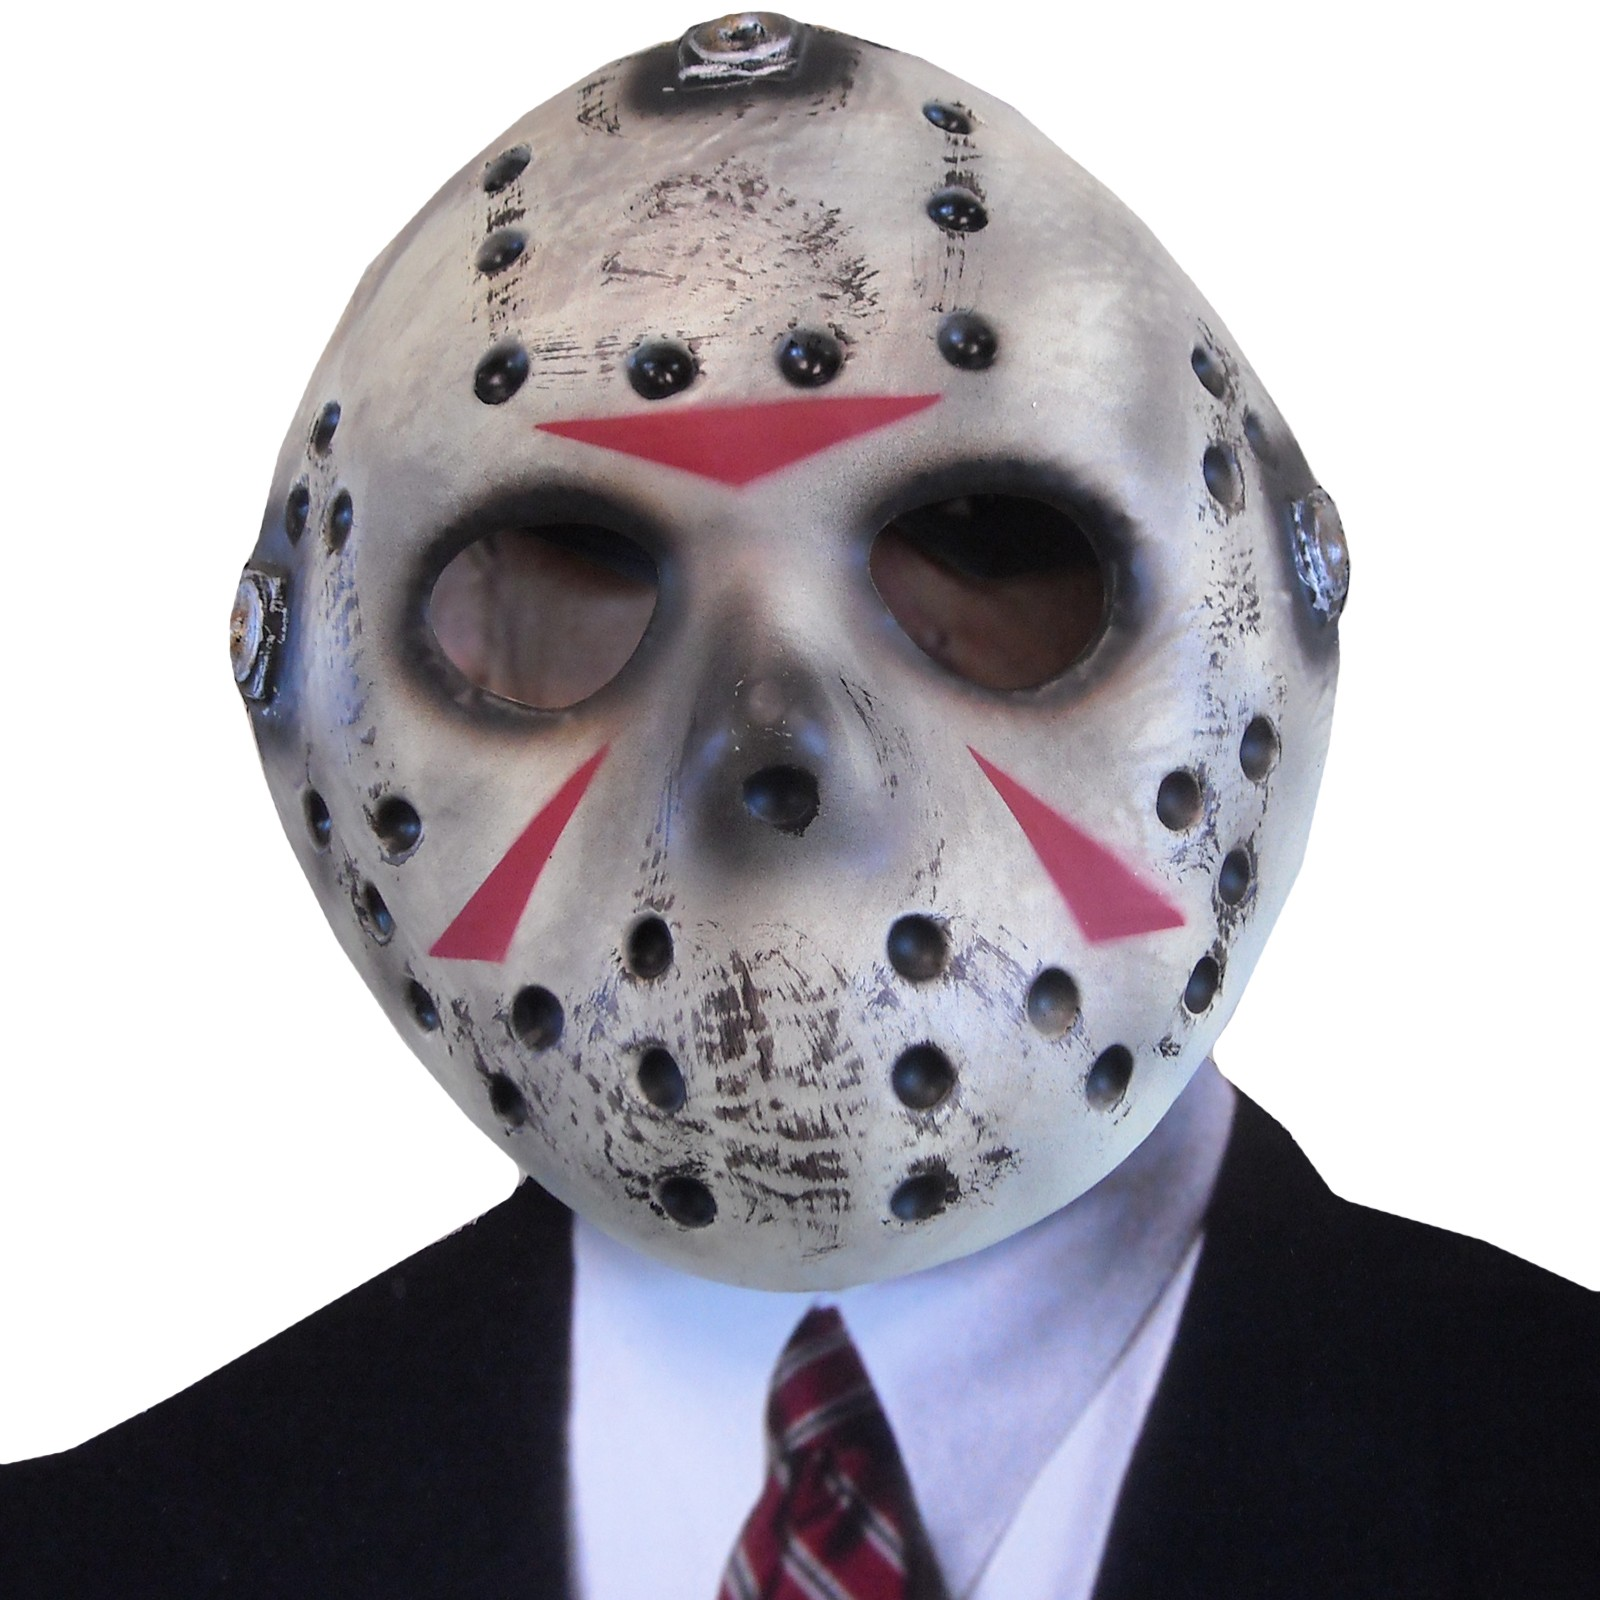 Jason Deluxe with Removable Hockey Mask   Costumes.com.au